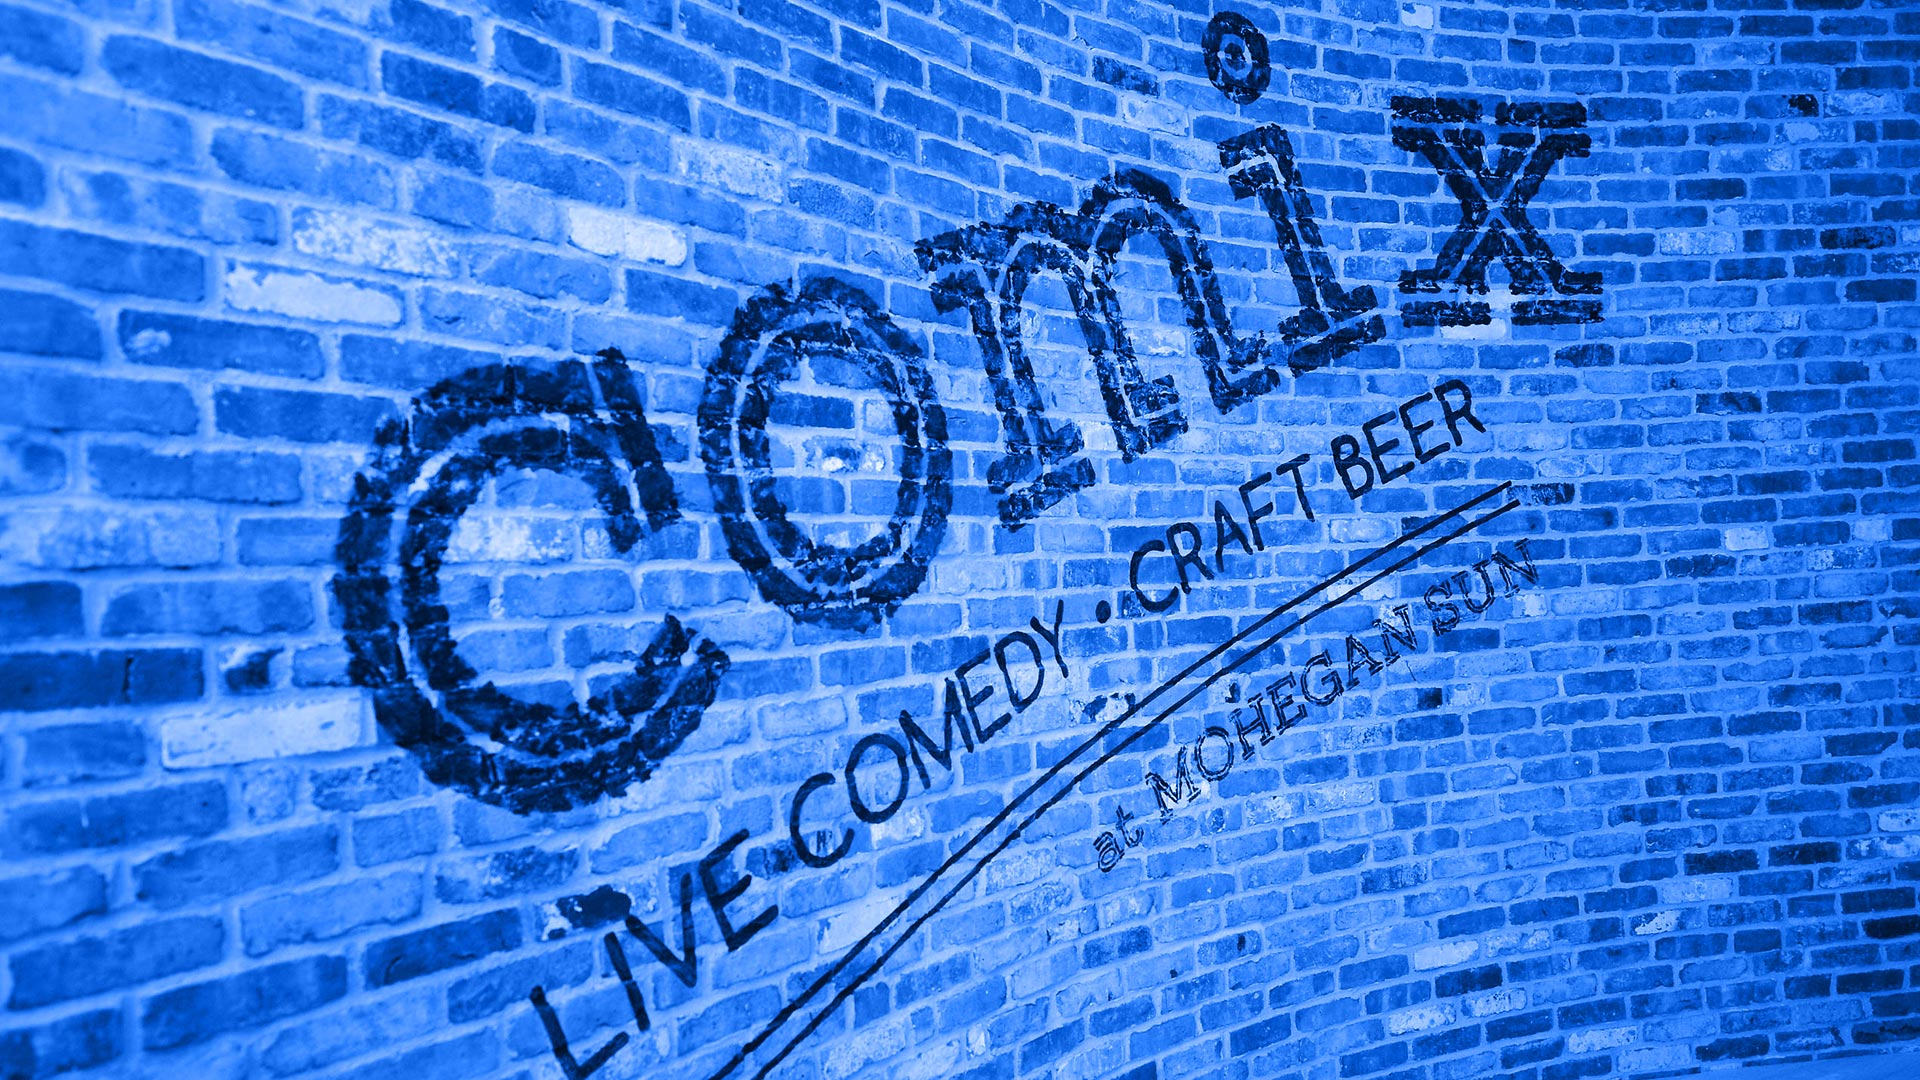 EMS PRO Night at COMIX Comedy Club